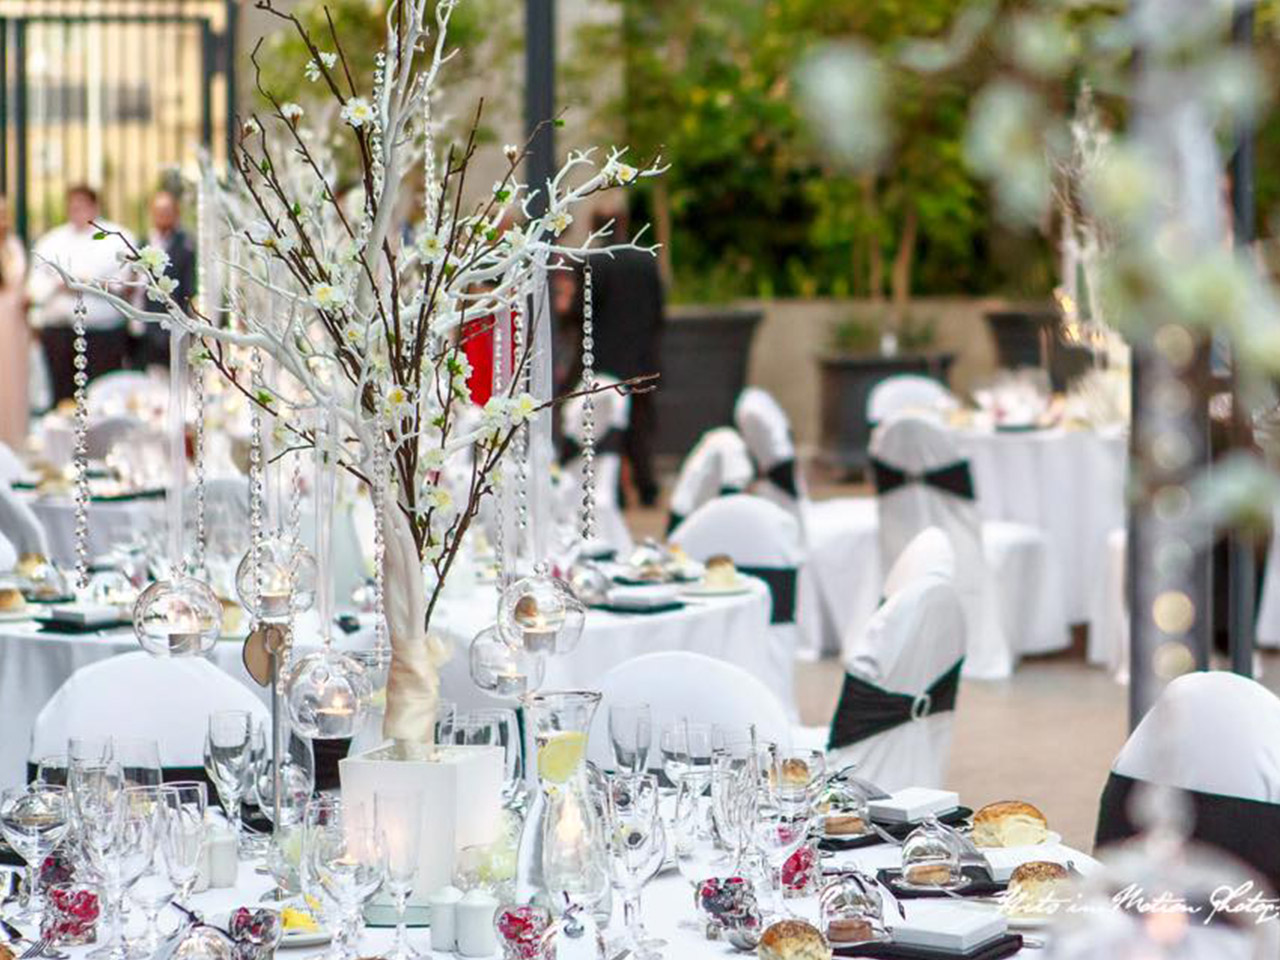 Tables and Chairs in Banquet Style with Foods, Plates, Glass and Flower Centerpieces